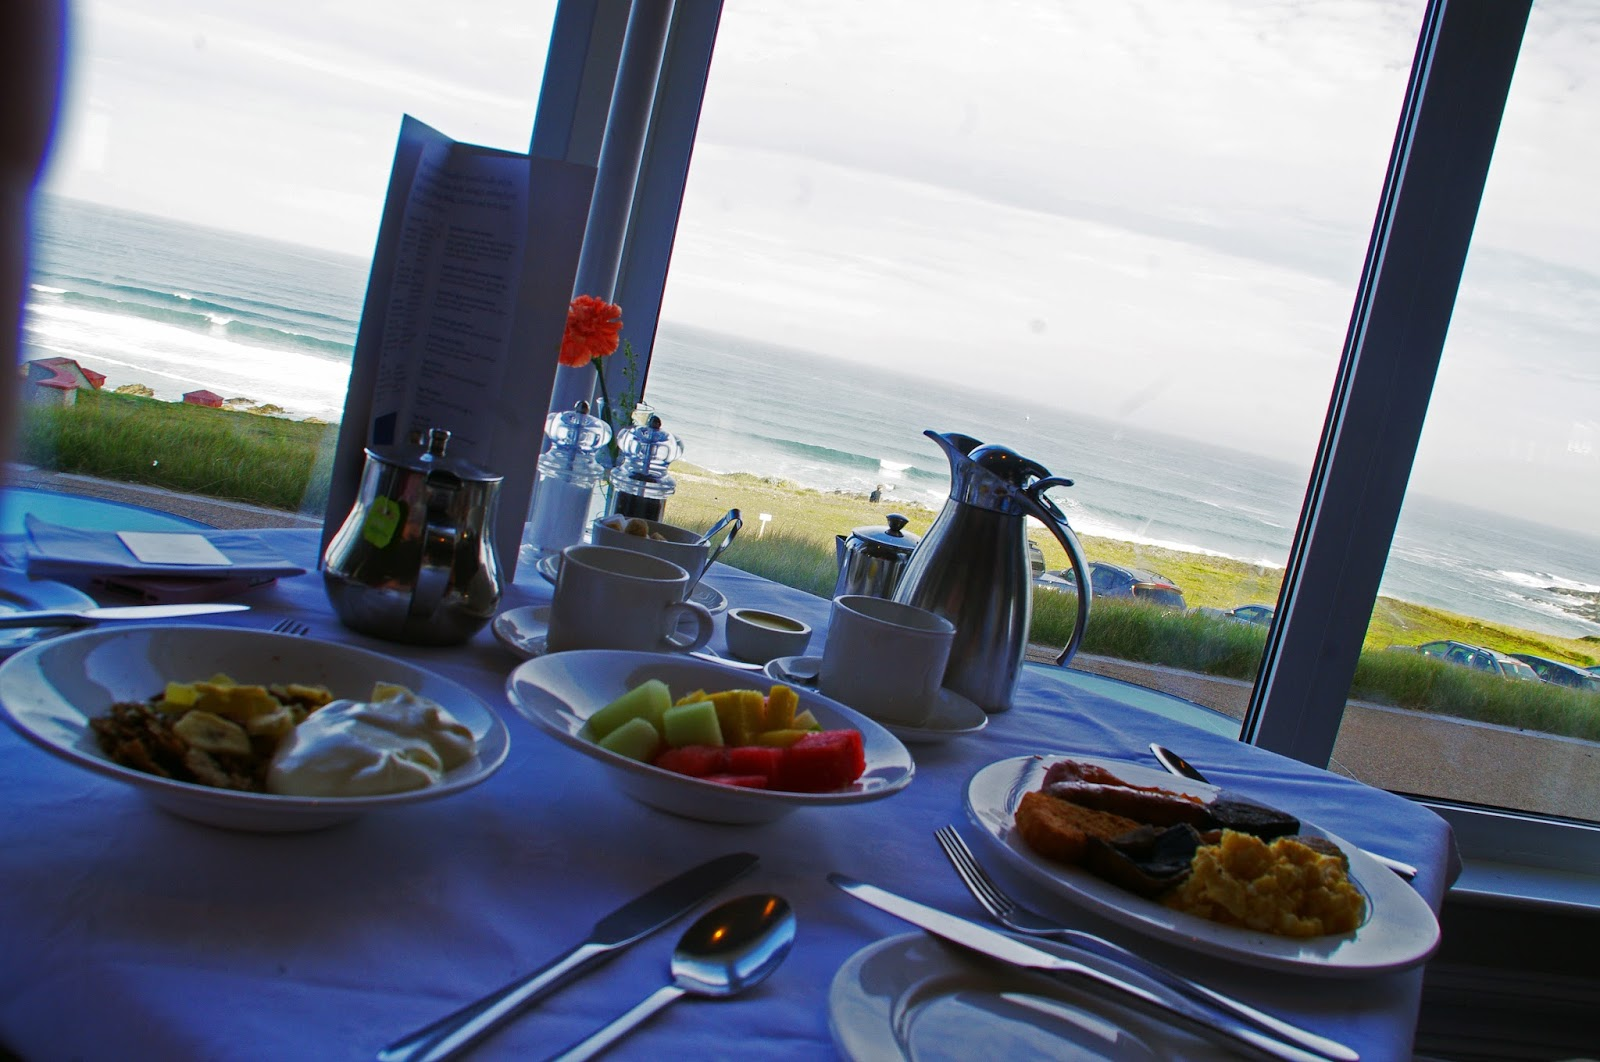 Headland Hotel Newquay Cornwall Restaurant Breakfast View